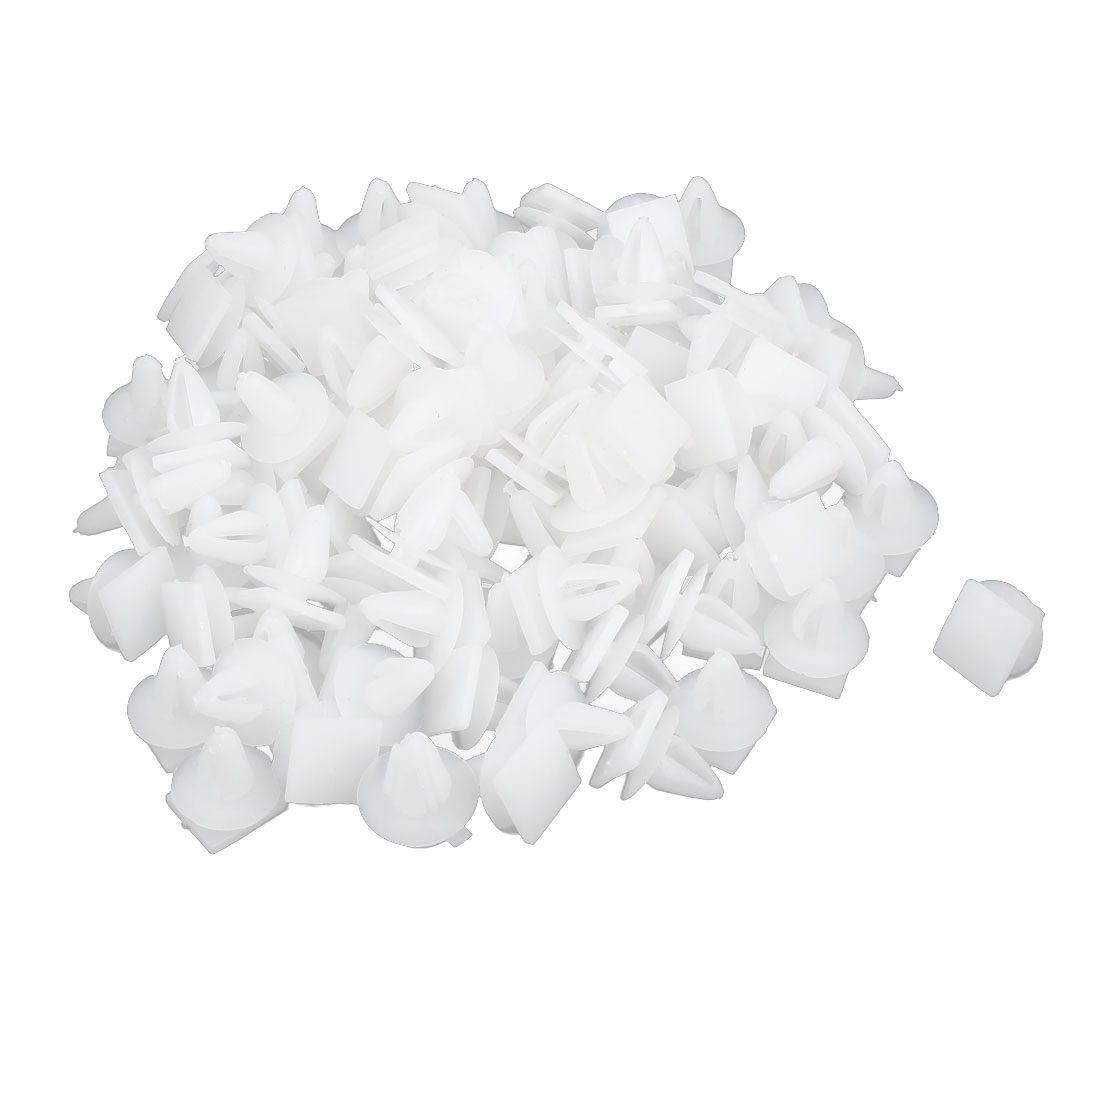 100 Pcs Universal Plastic Rivet Car Door Trim Retainer Fastener Clips White